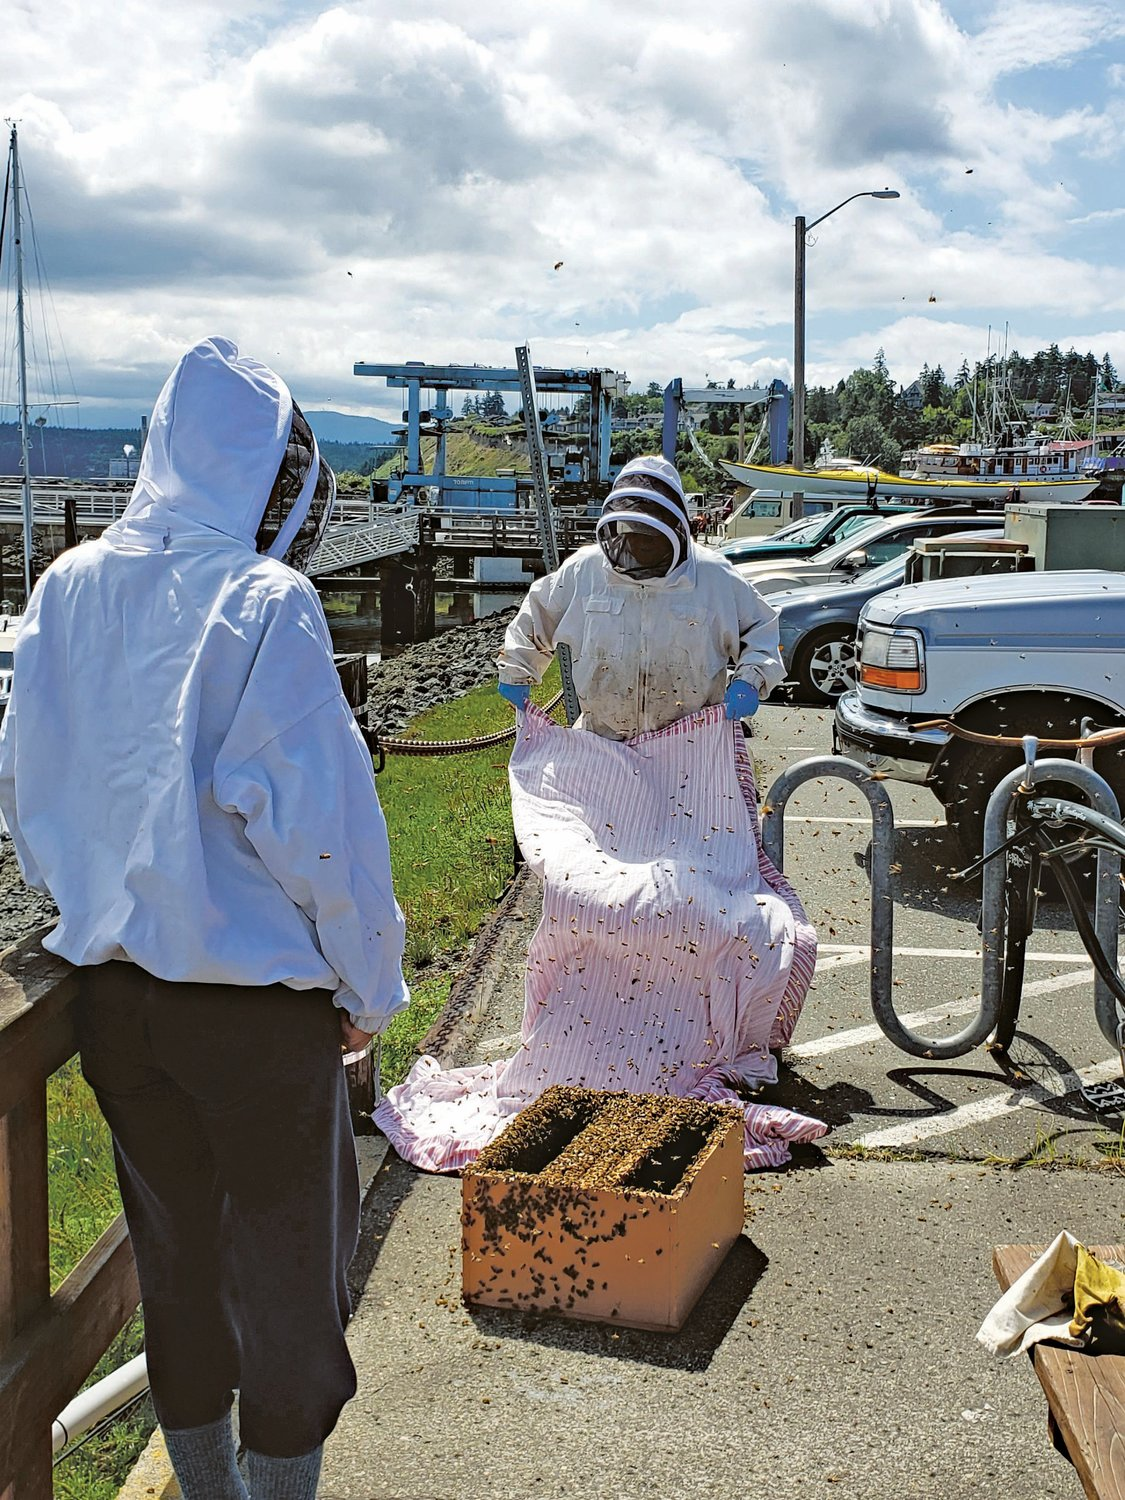 A pair of beekeepers works to relocate a swarm of bees that descended on the picnic area at the Boat Haven Wednesday, June 24.